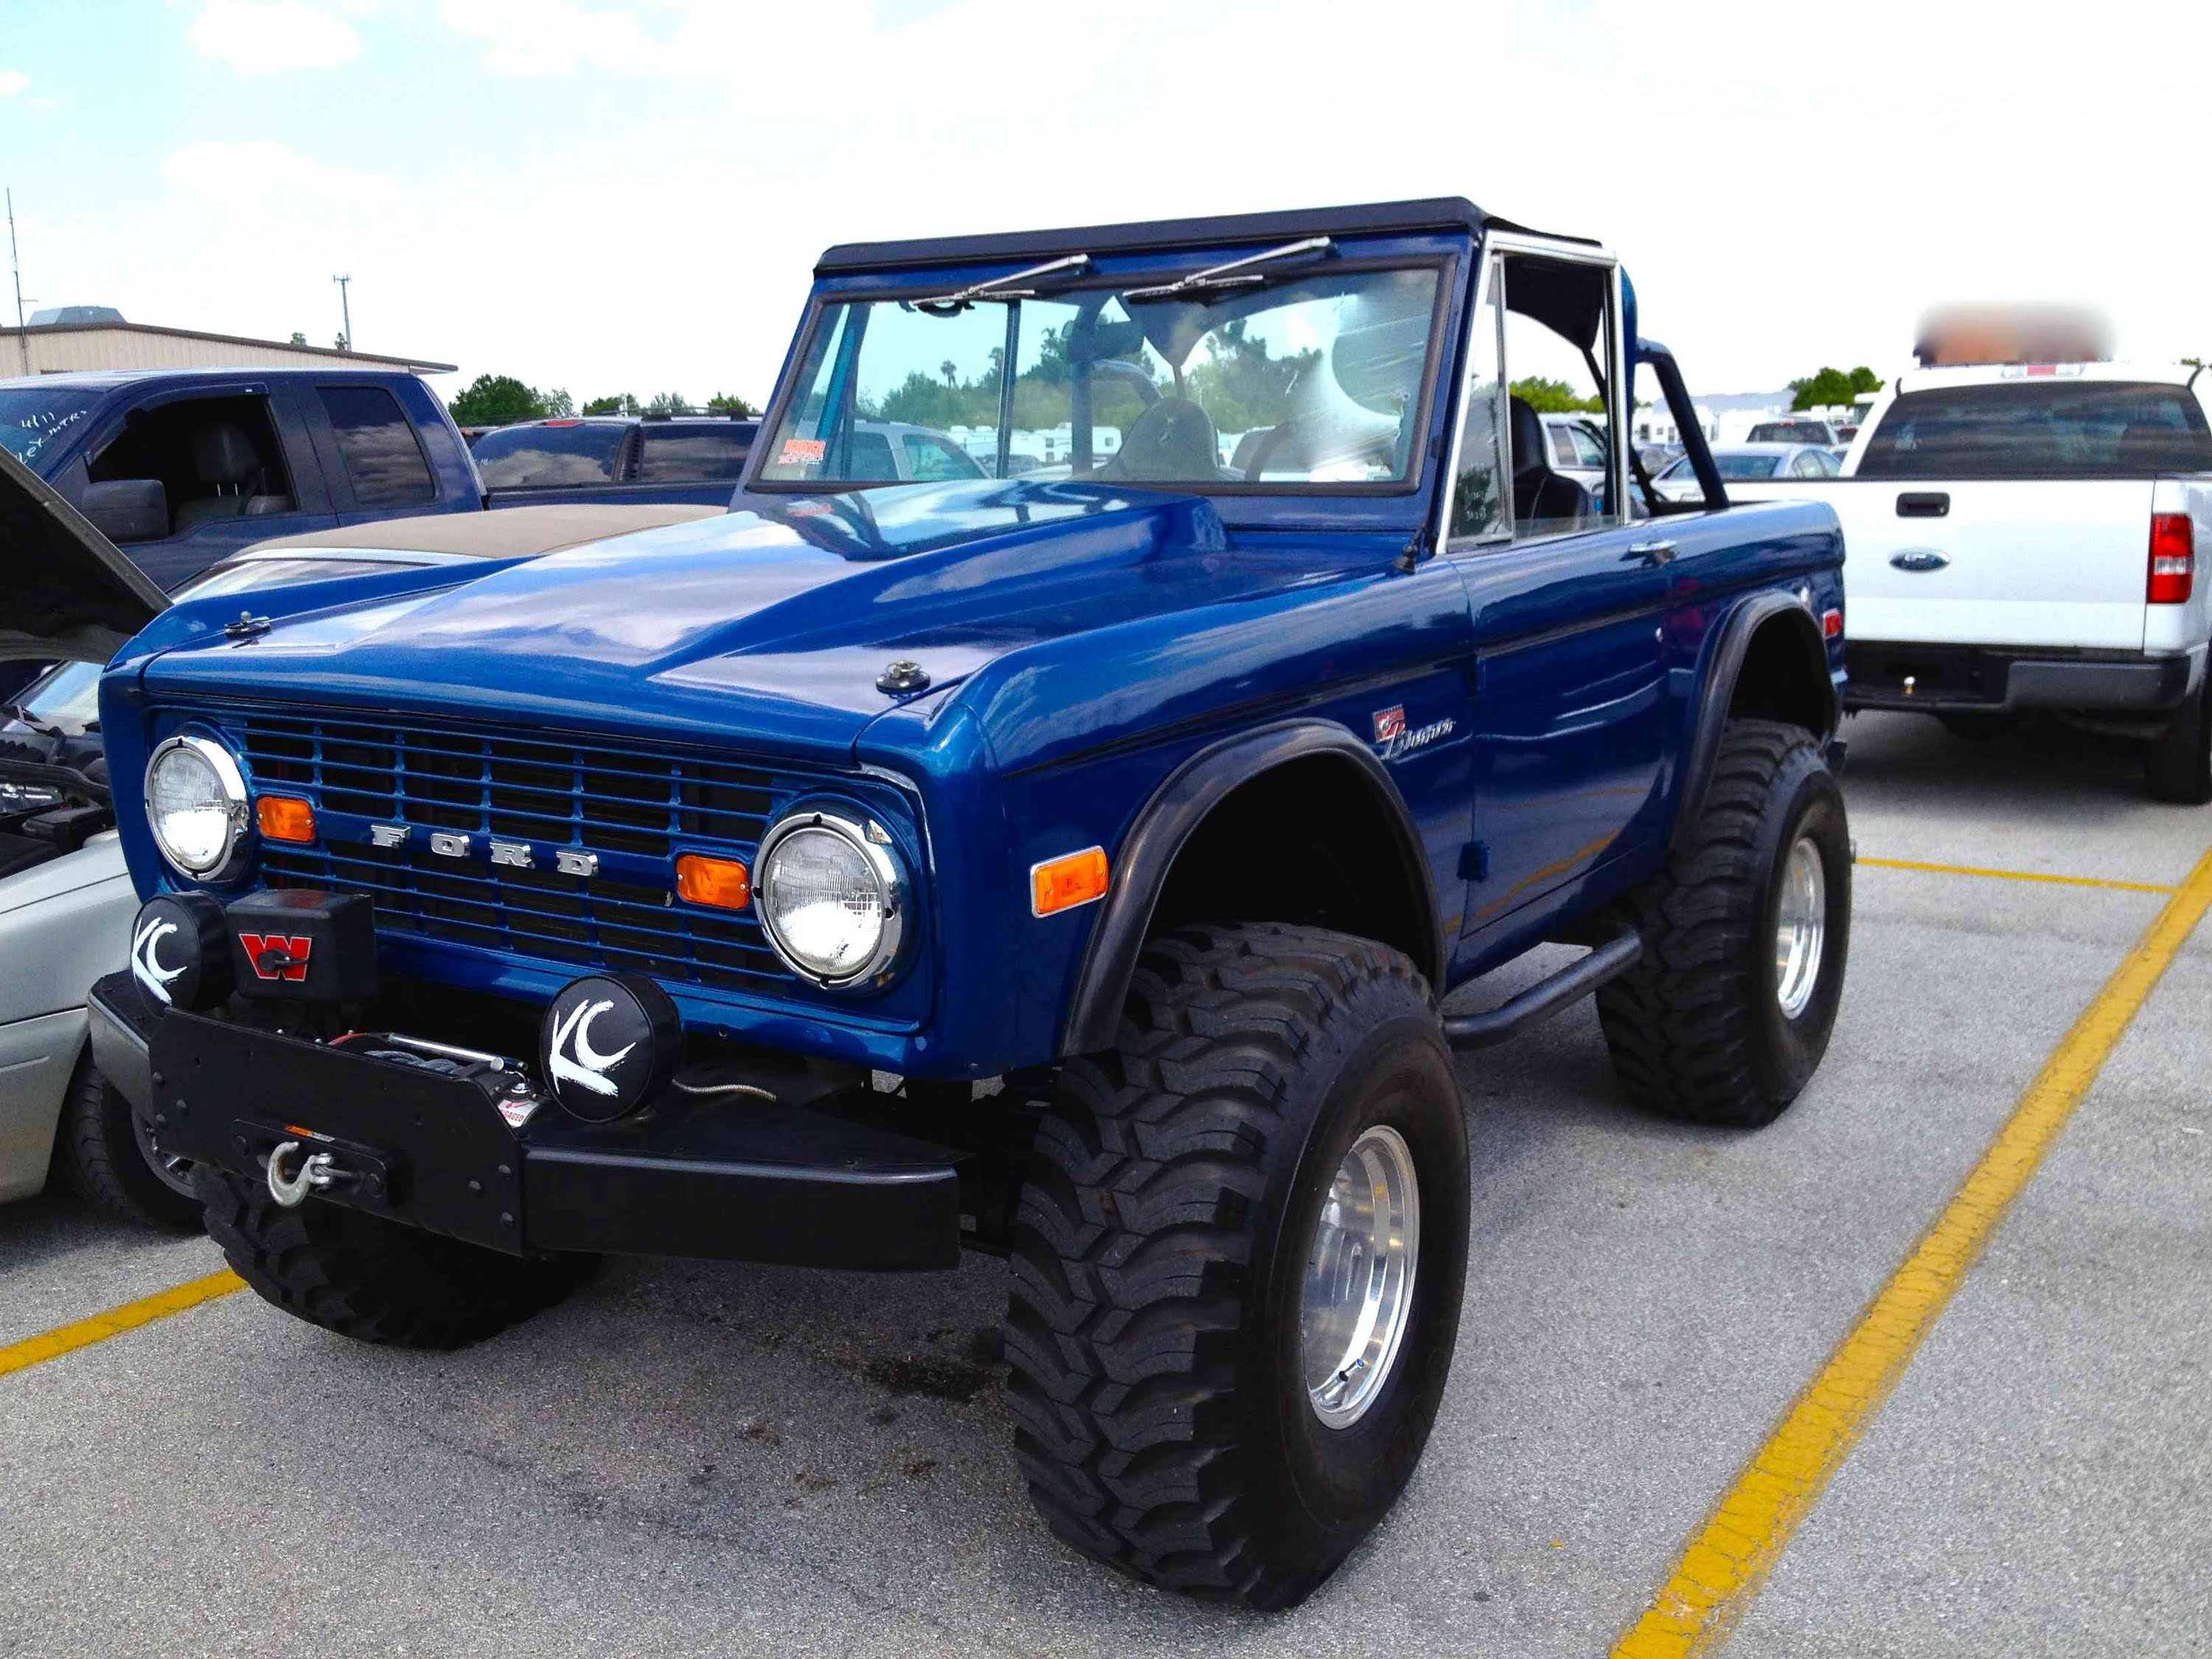 73' Bronco PHOTO: YouTube